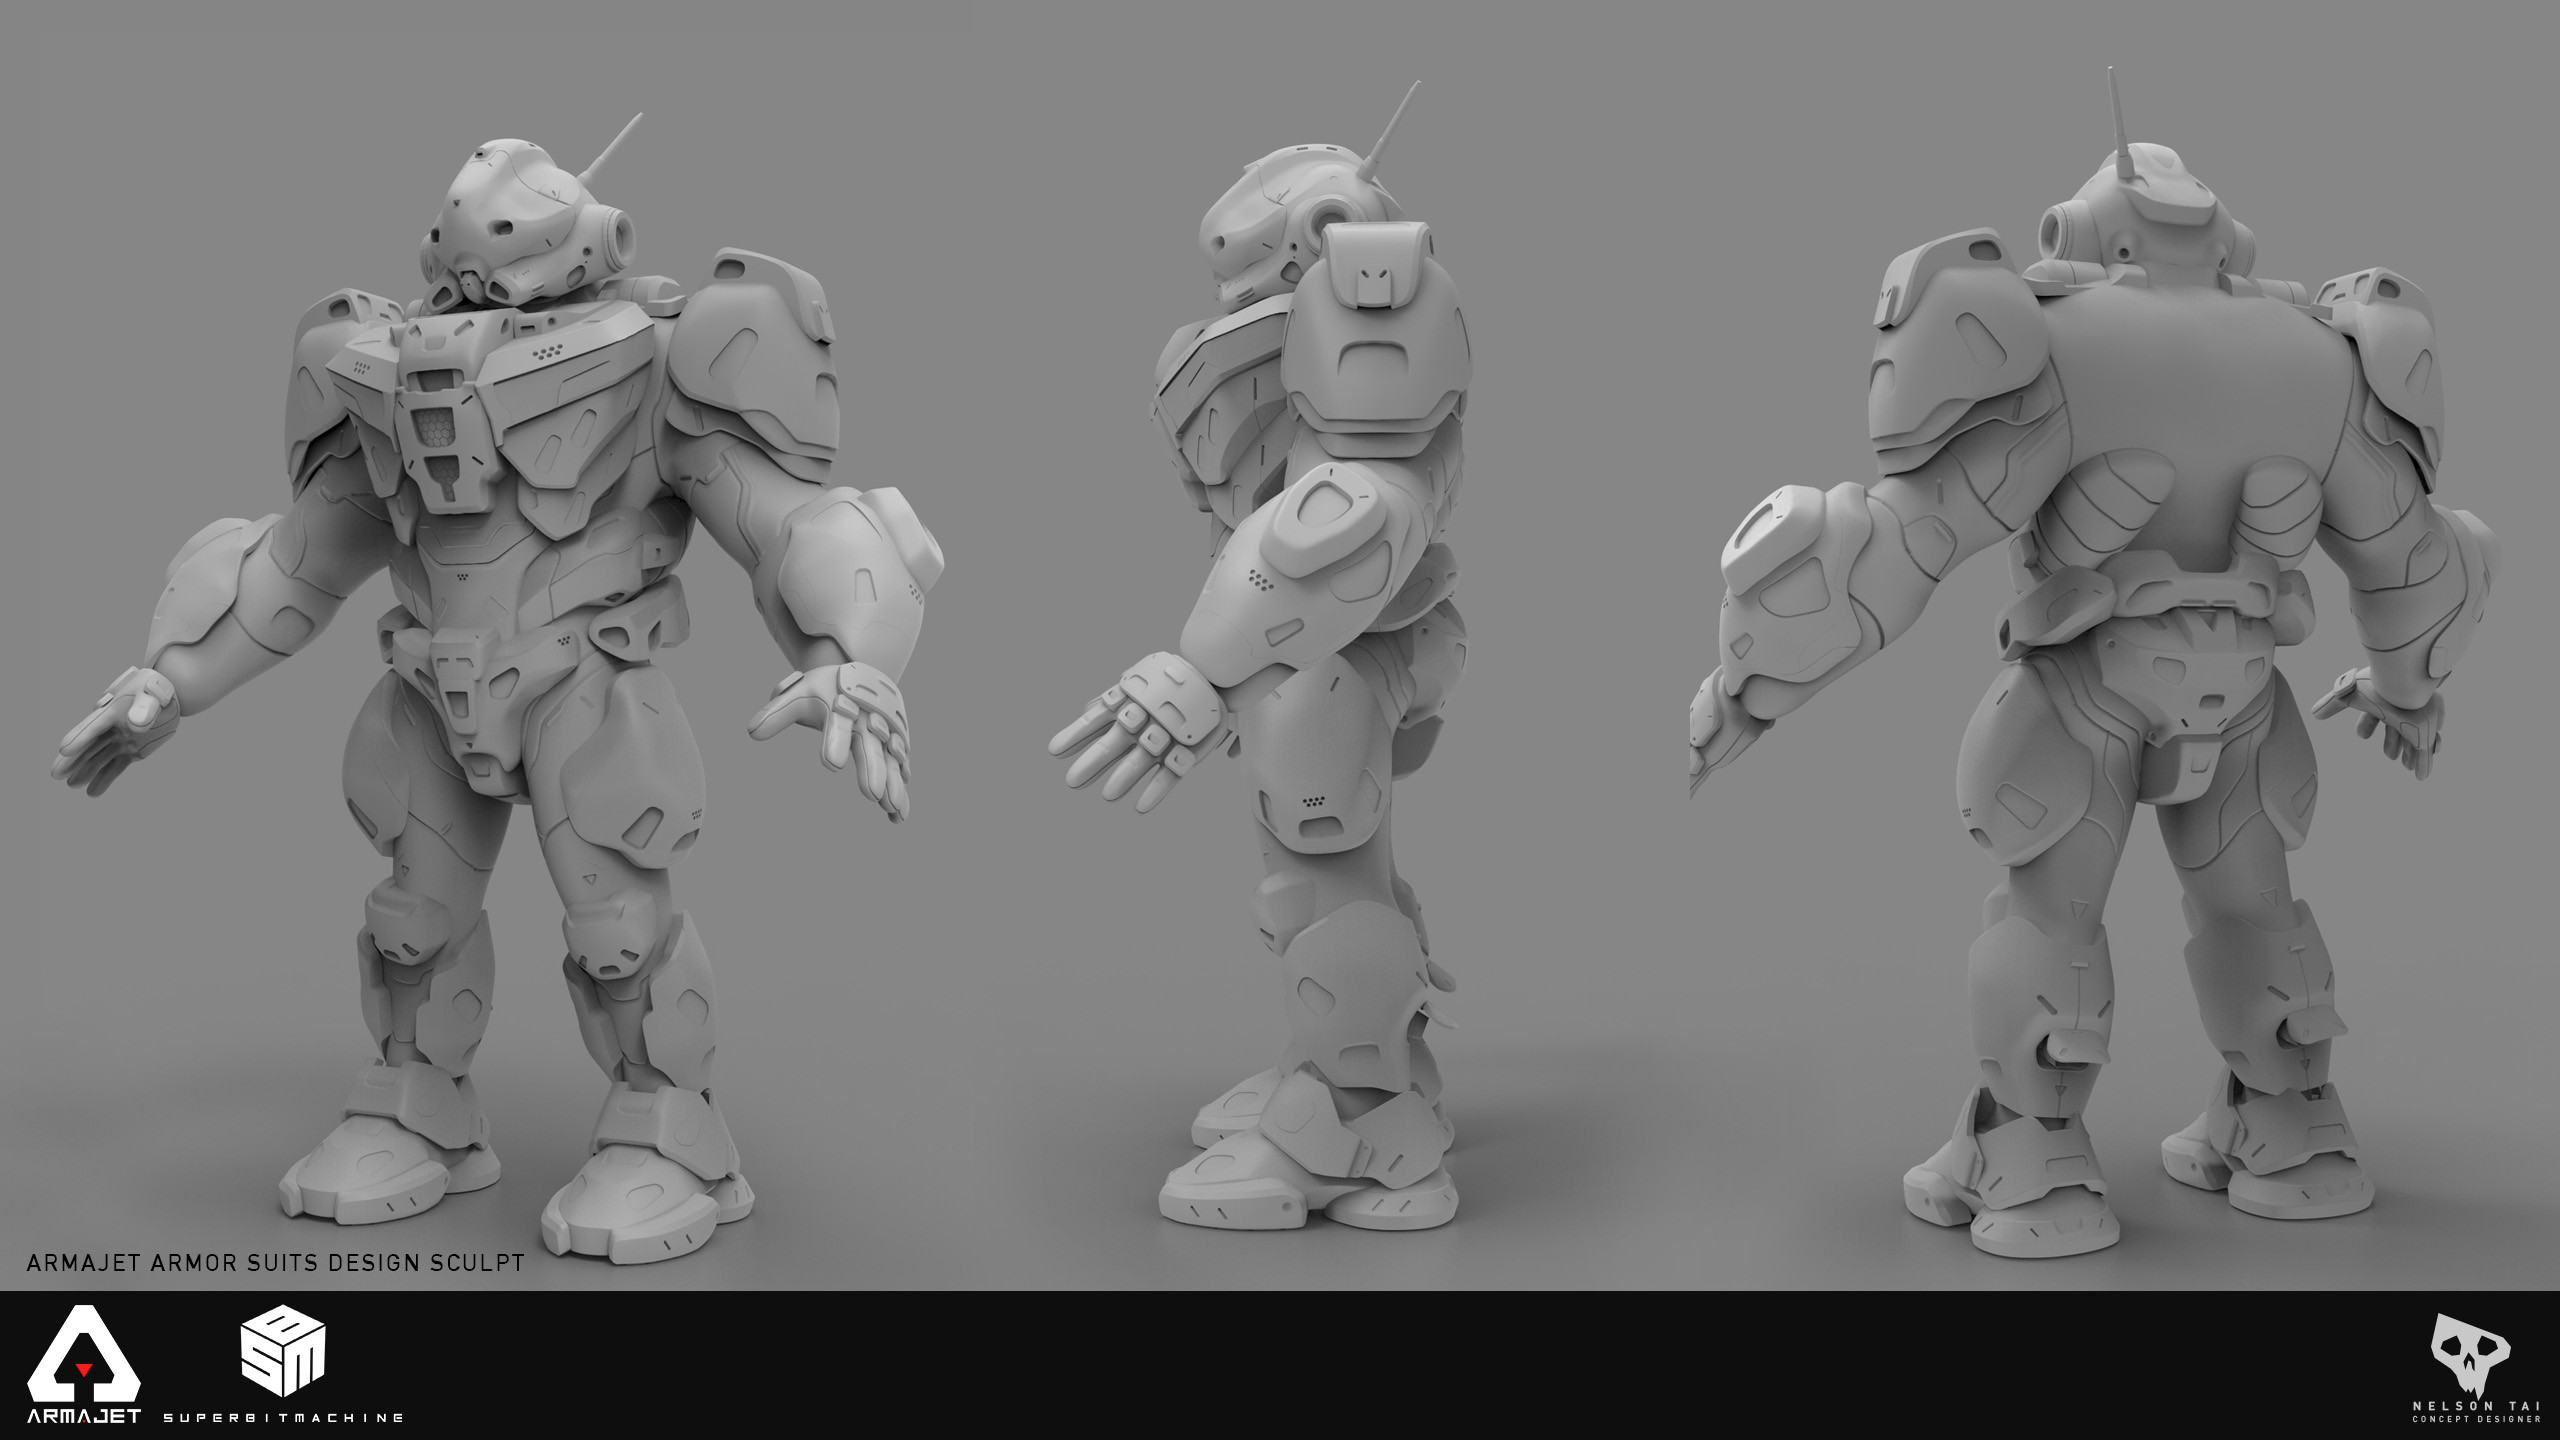 Clay render of the concept sculpt.